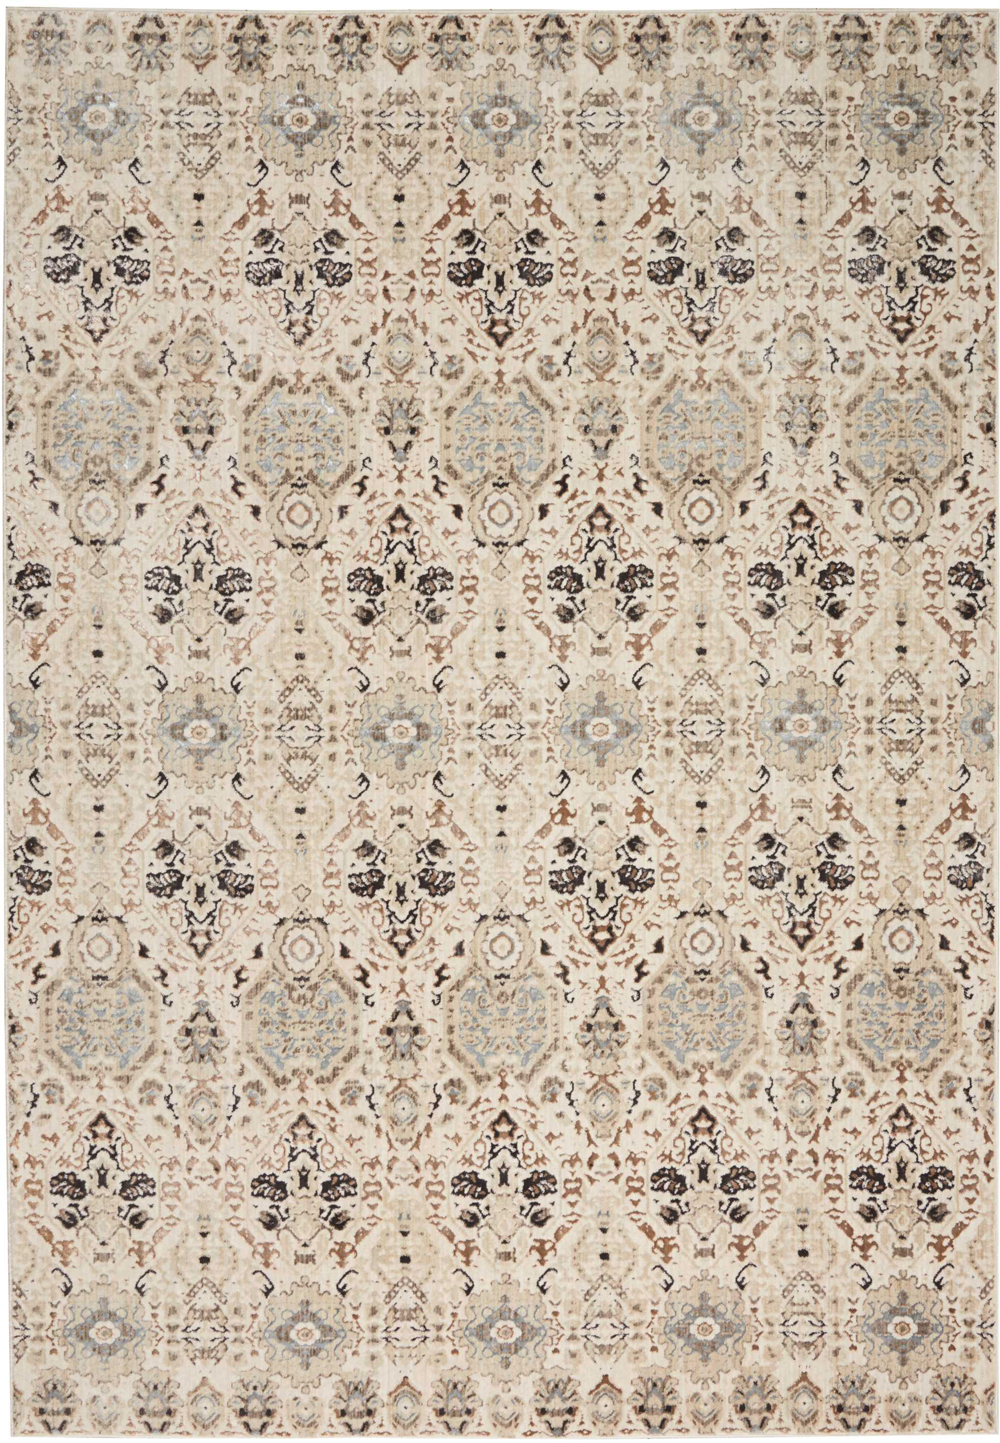 Kathy Ireland KI34 SILVER SCREEN KI341 GREY/SLATE Rug